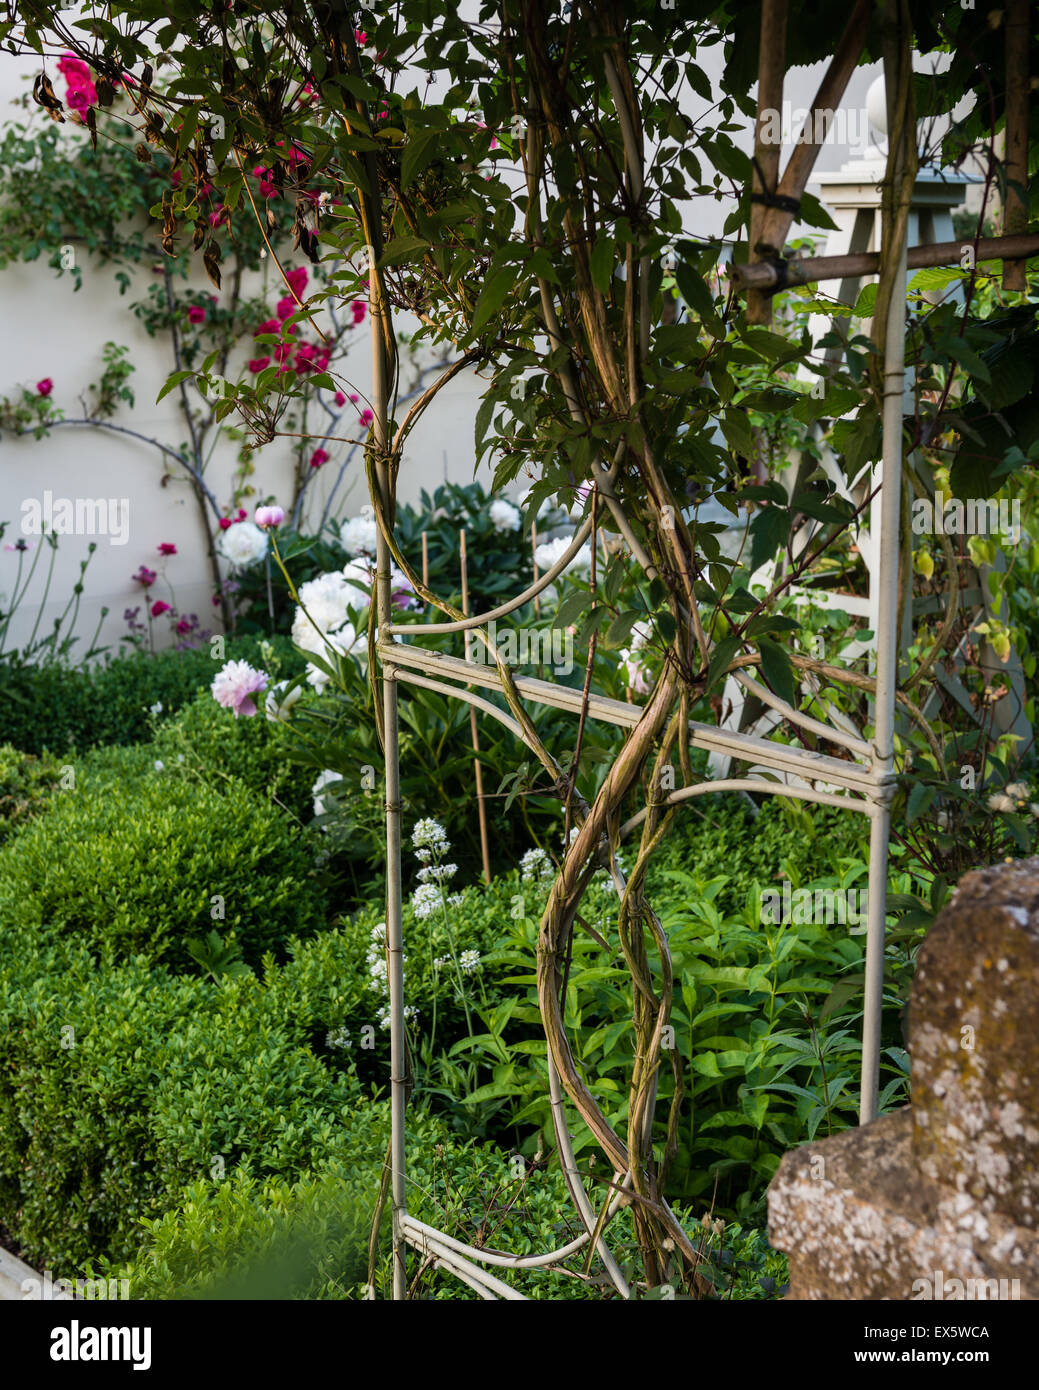 Box hedge and trellis in country garden - Stock Image